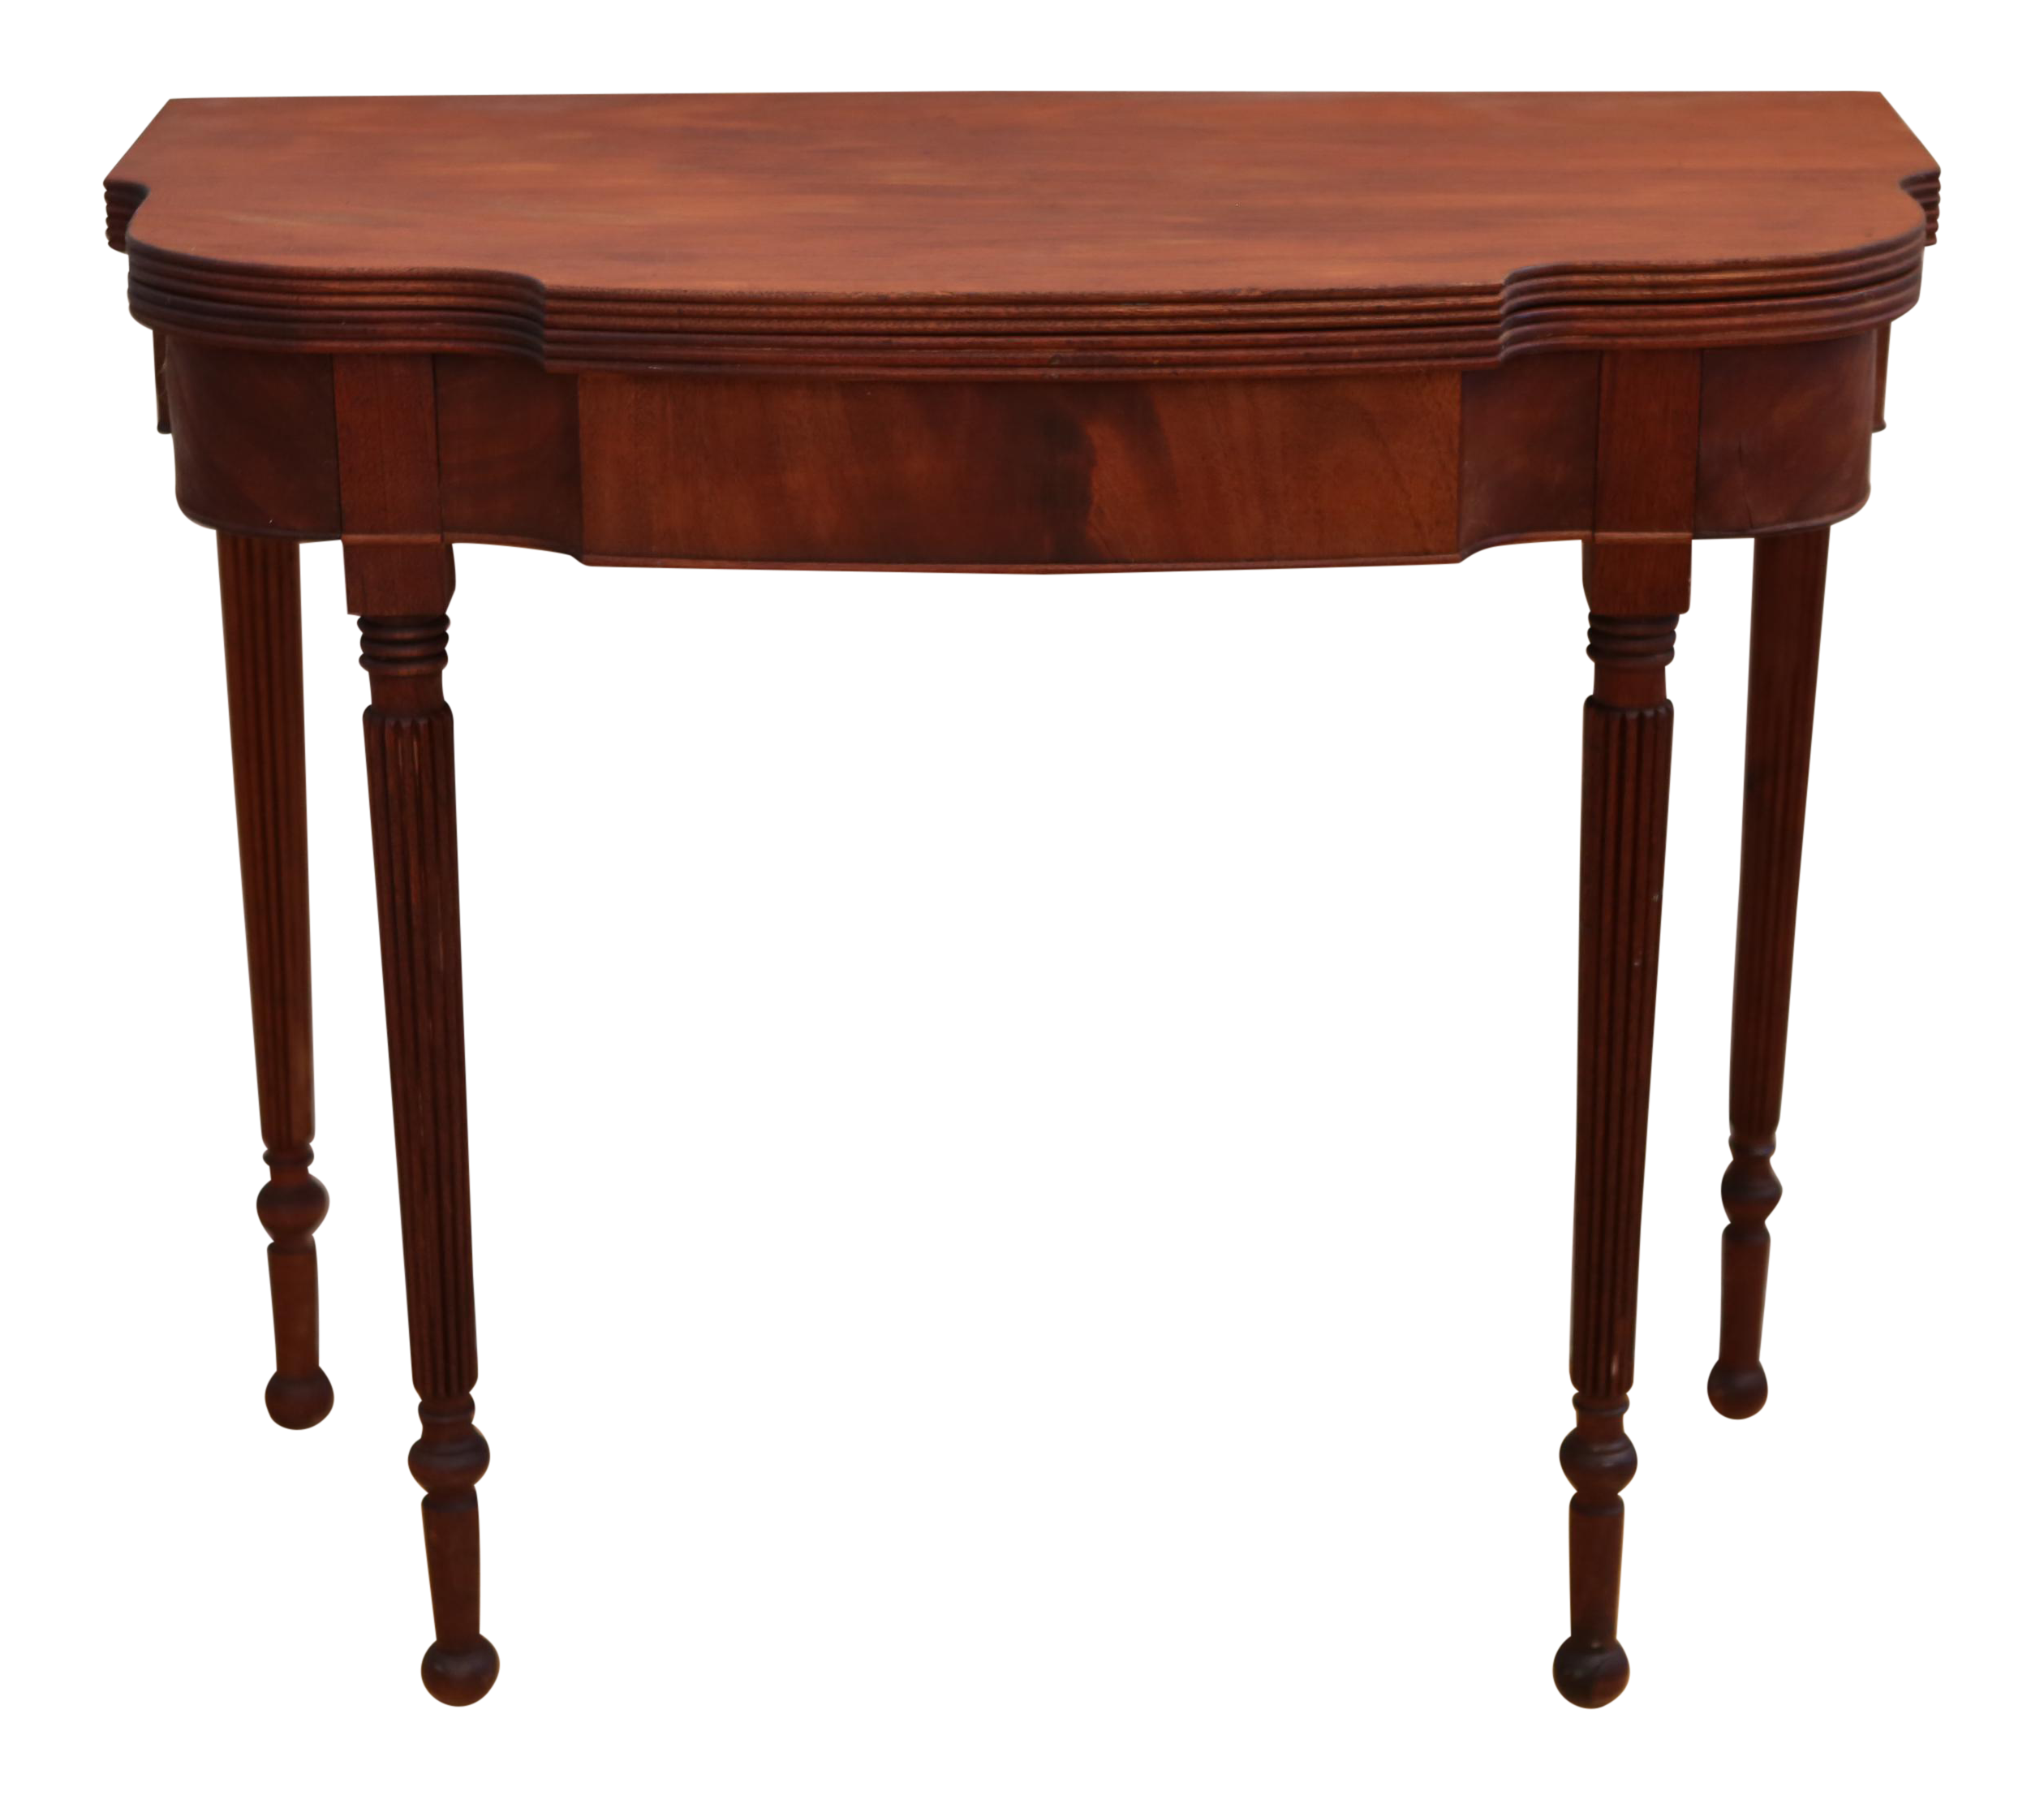 2 in 1 vintage convertible table console to dining table for Convertible console table